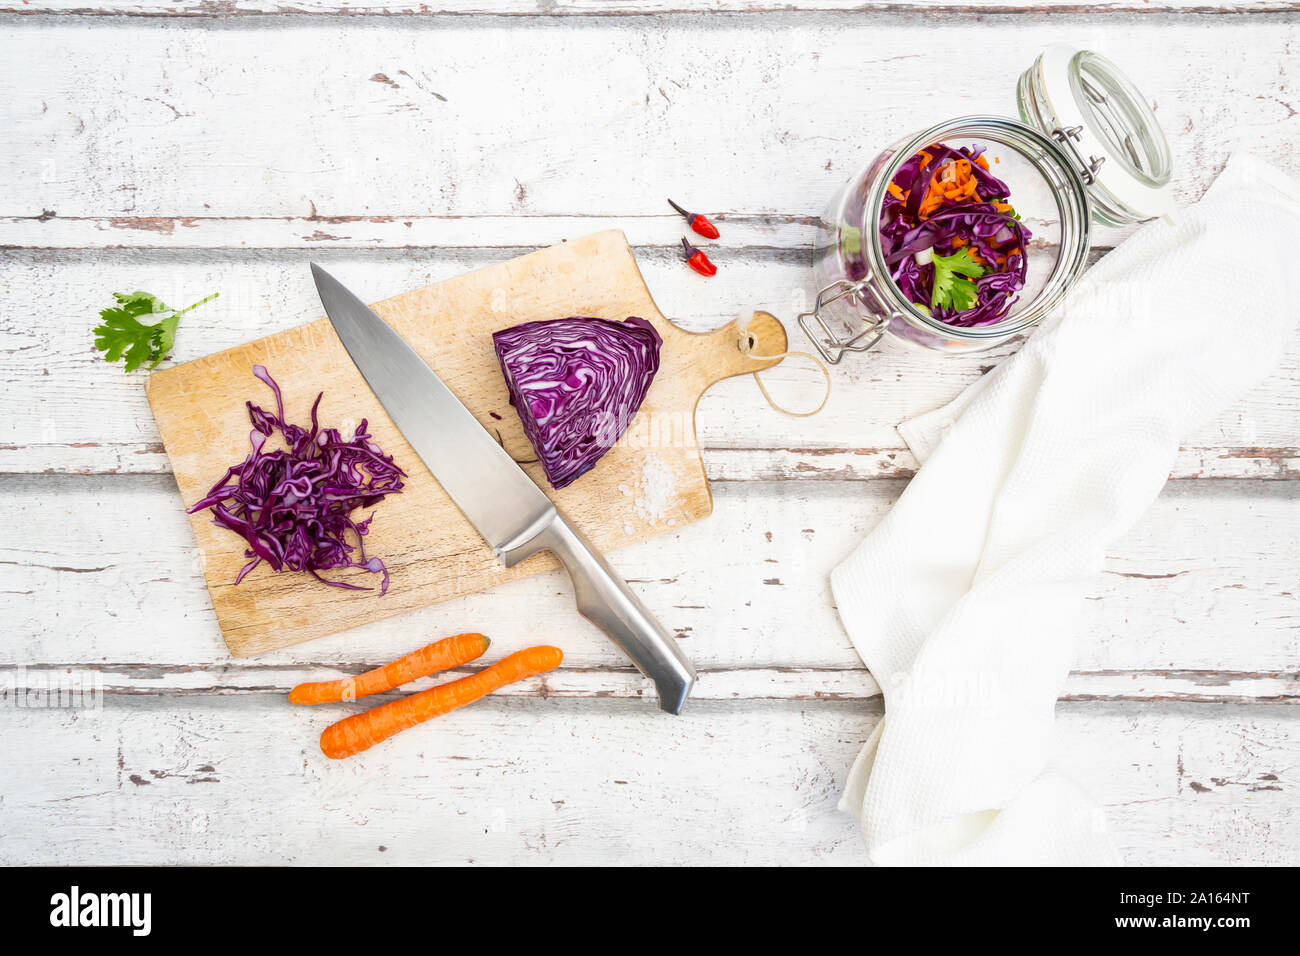 Red cabbage, chili peppers, carrots and coriander on wooden table Stock Photo